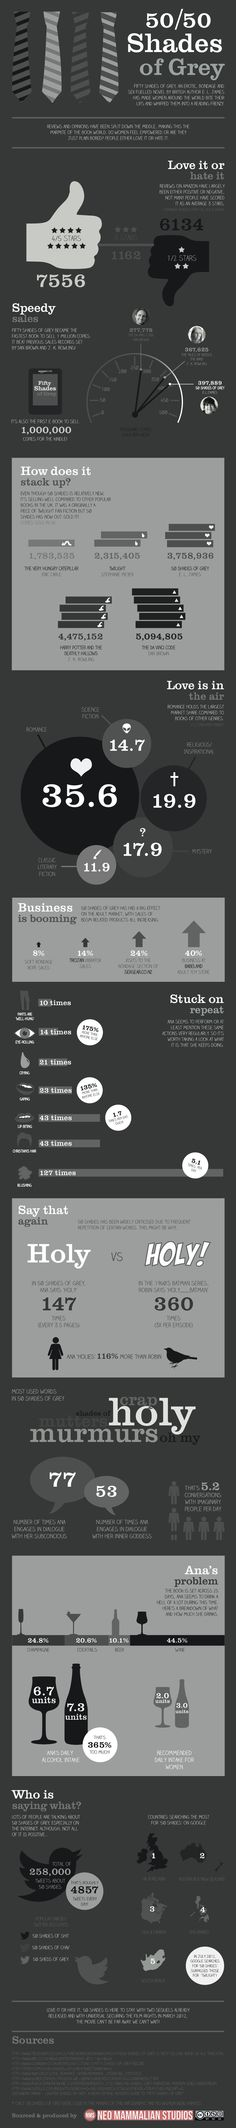 Less known shades of Fifty Shades of Grey (infographic)   #reading